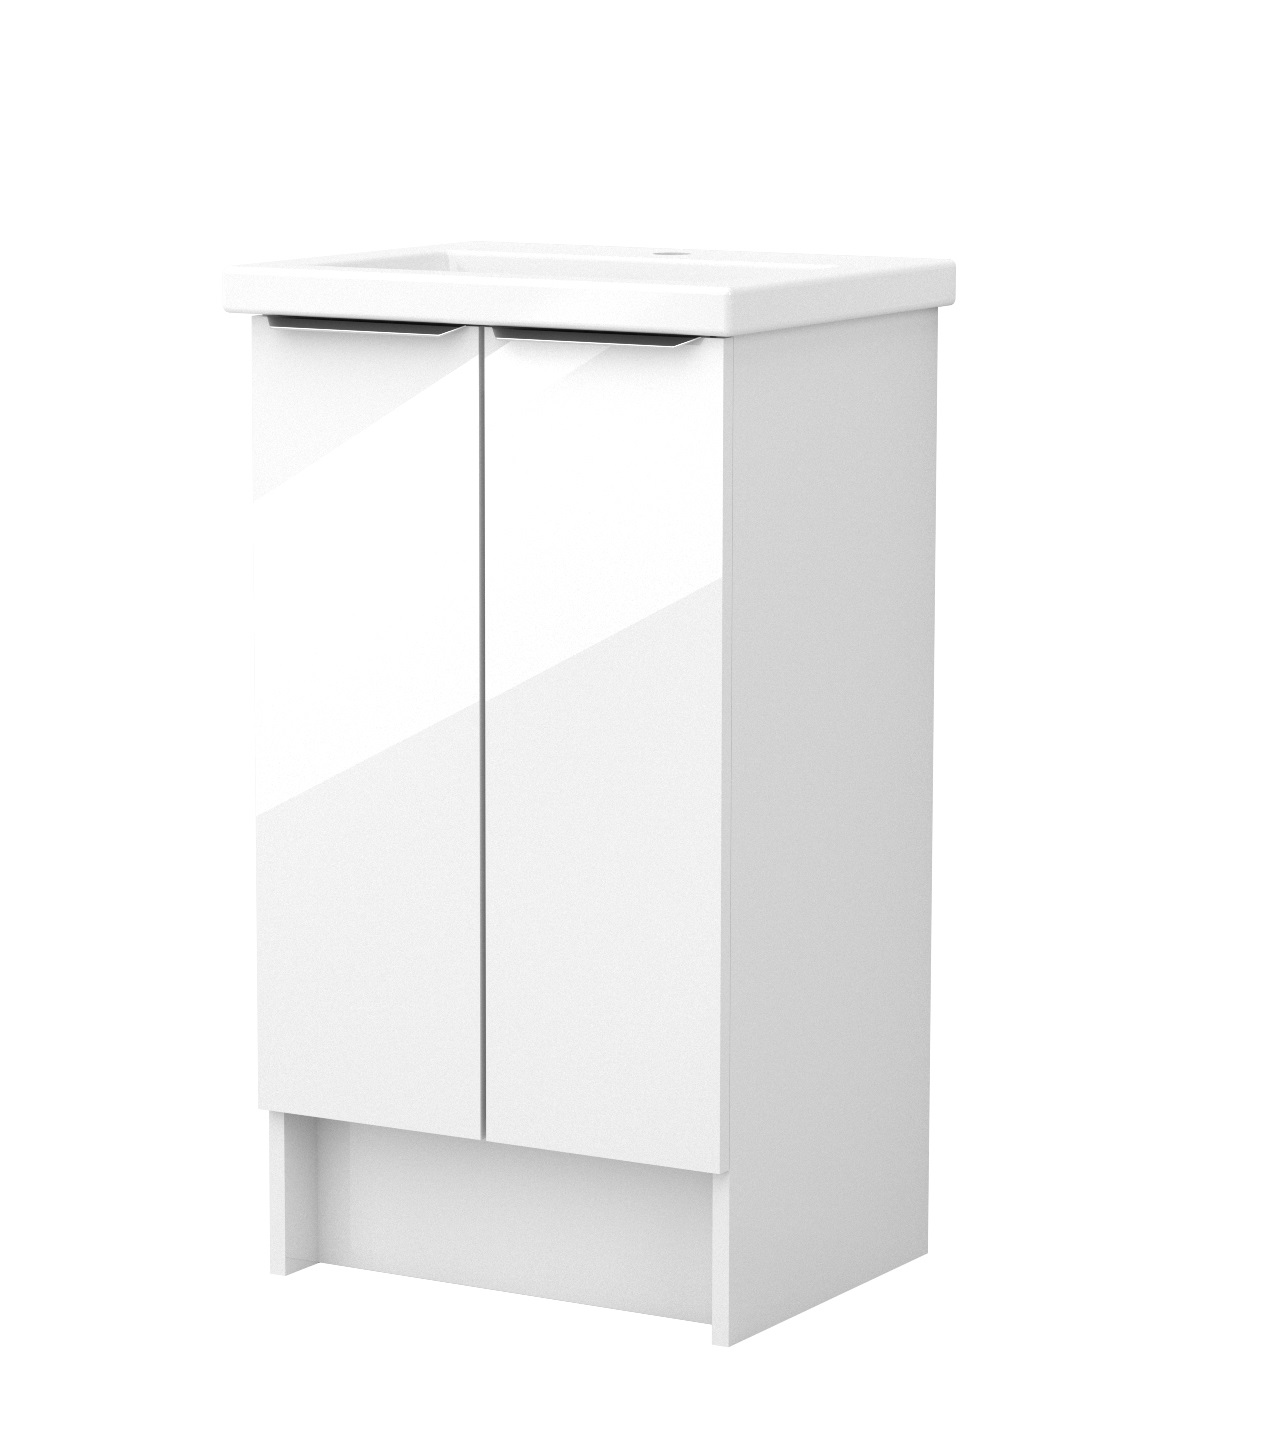 click on 50cm Floorstanding Double Door Unit image to enlarge